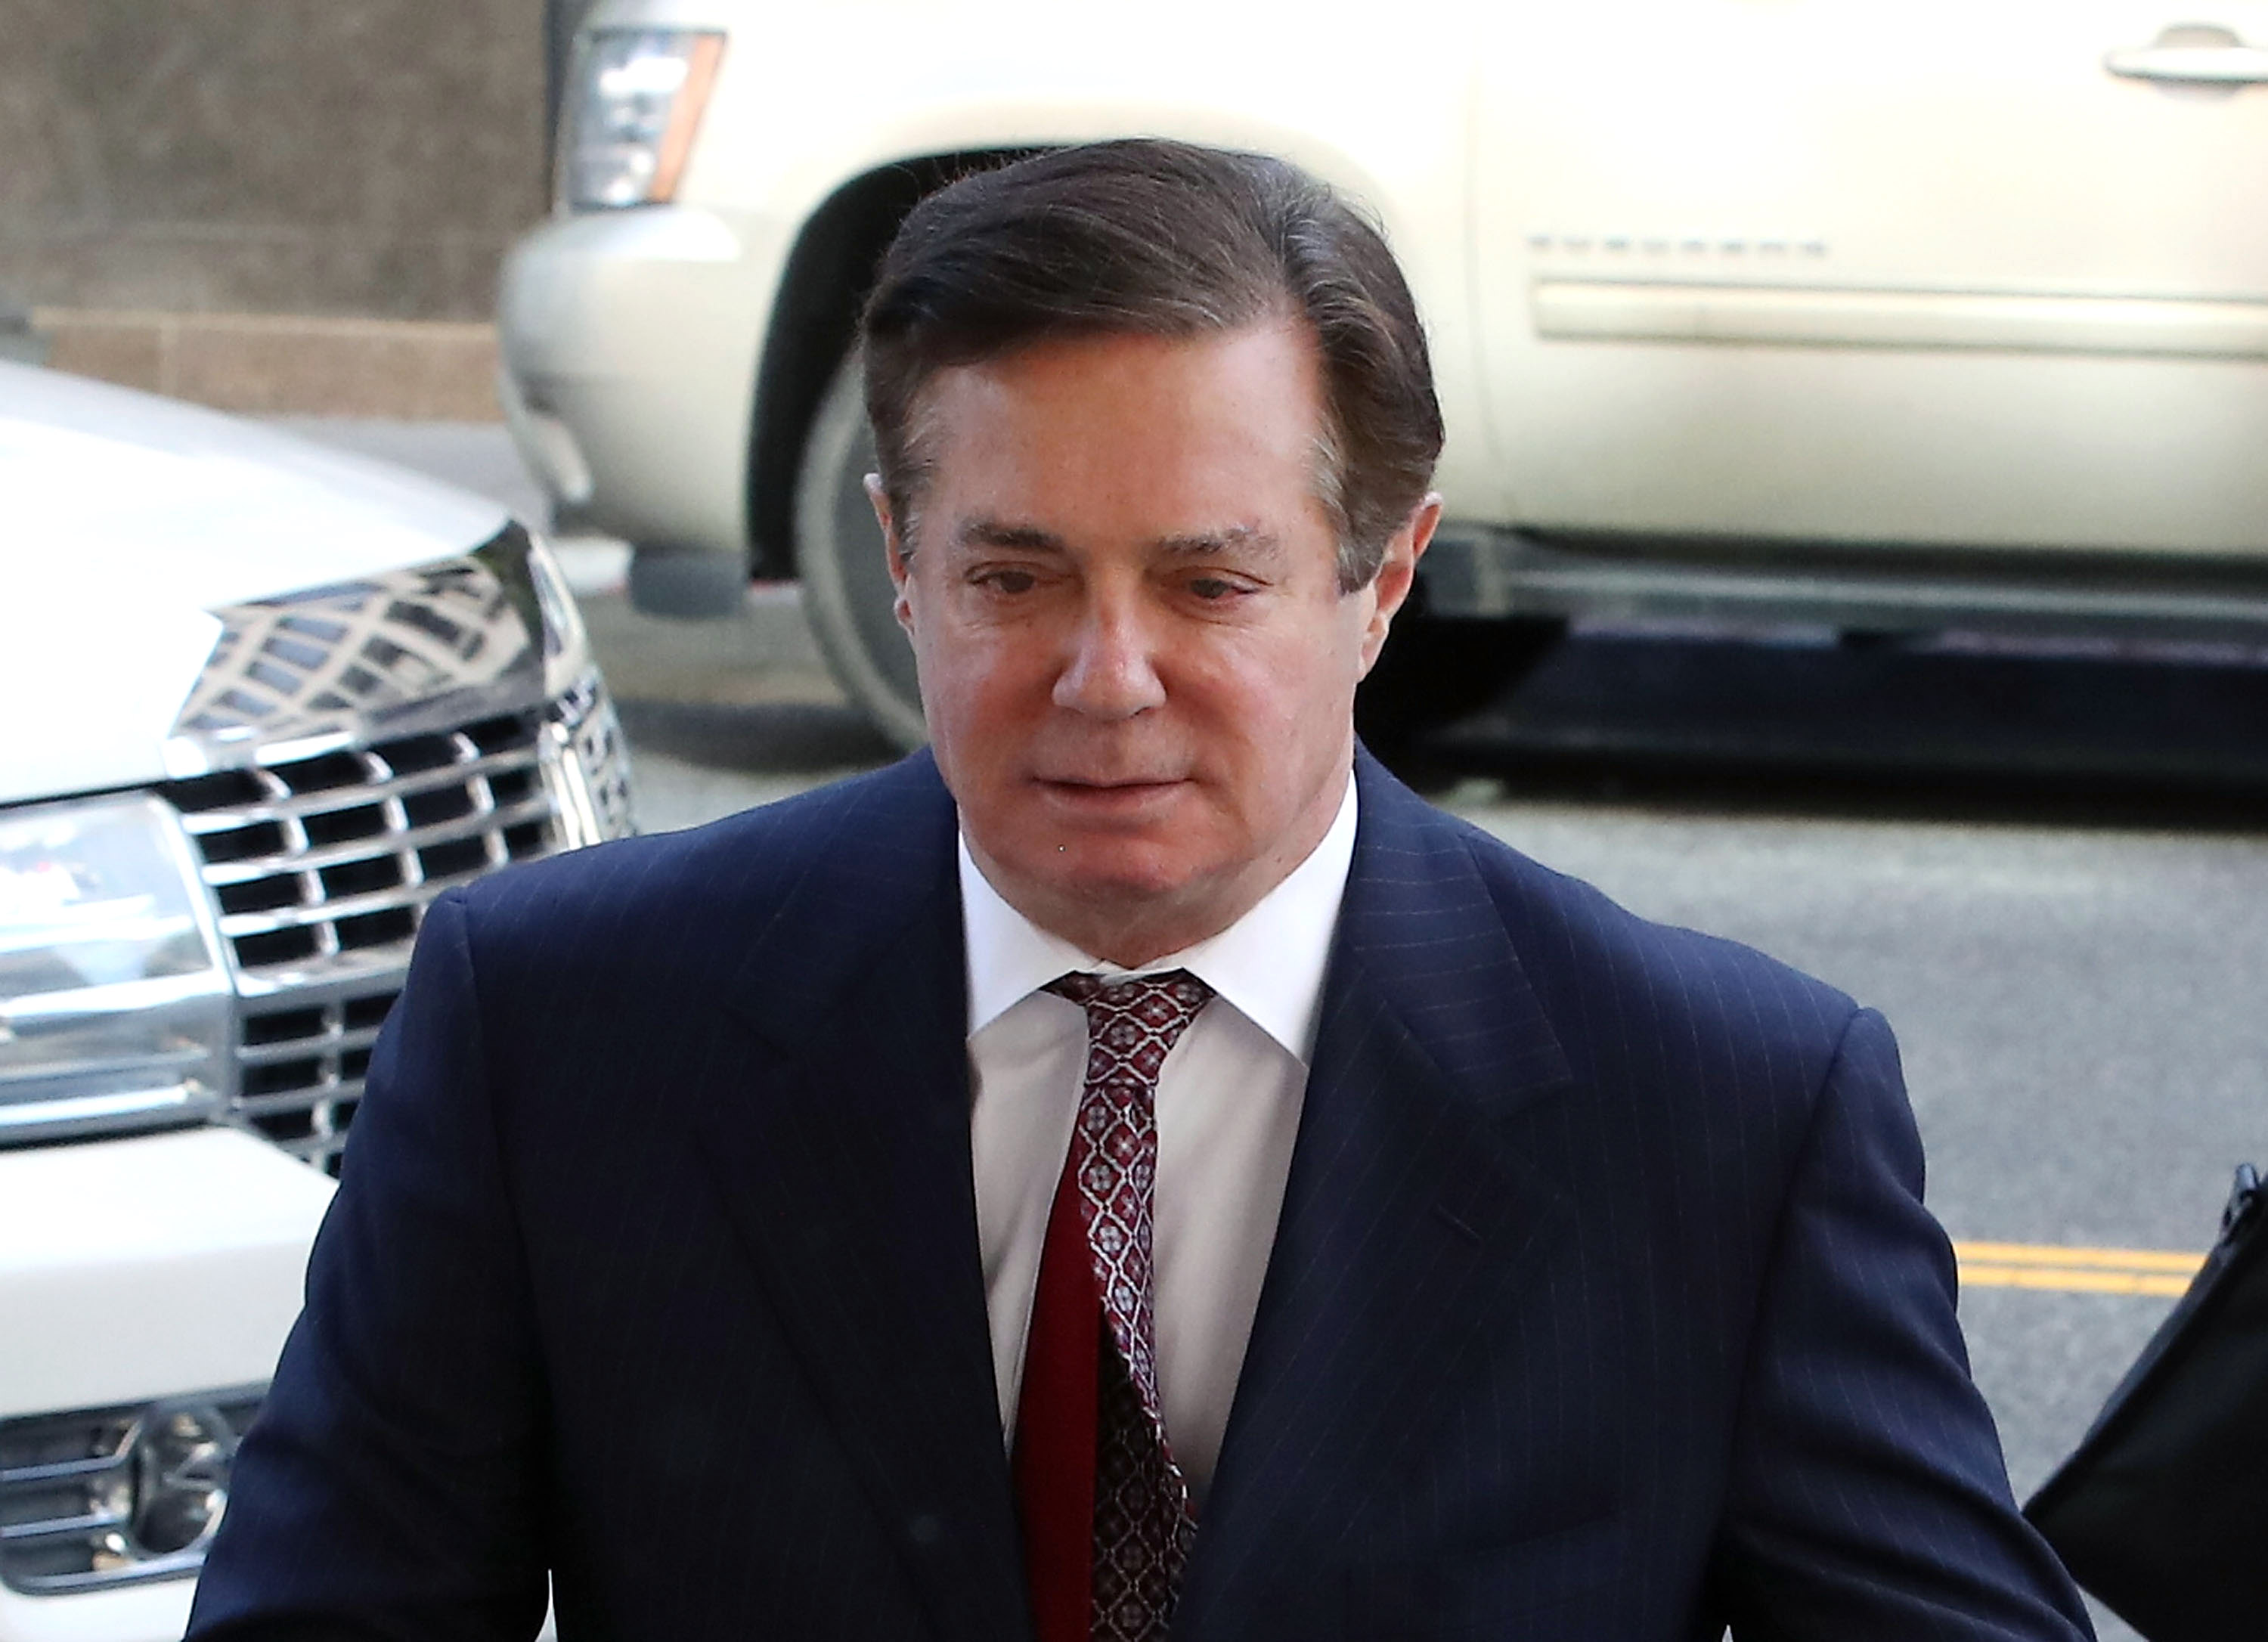 Paul Manafort Arraigned On New Charges Of Witness Tampering